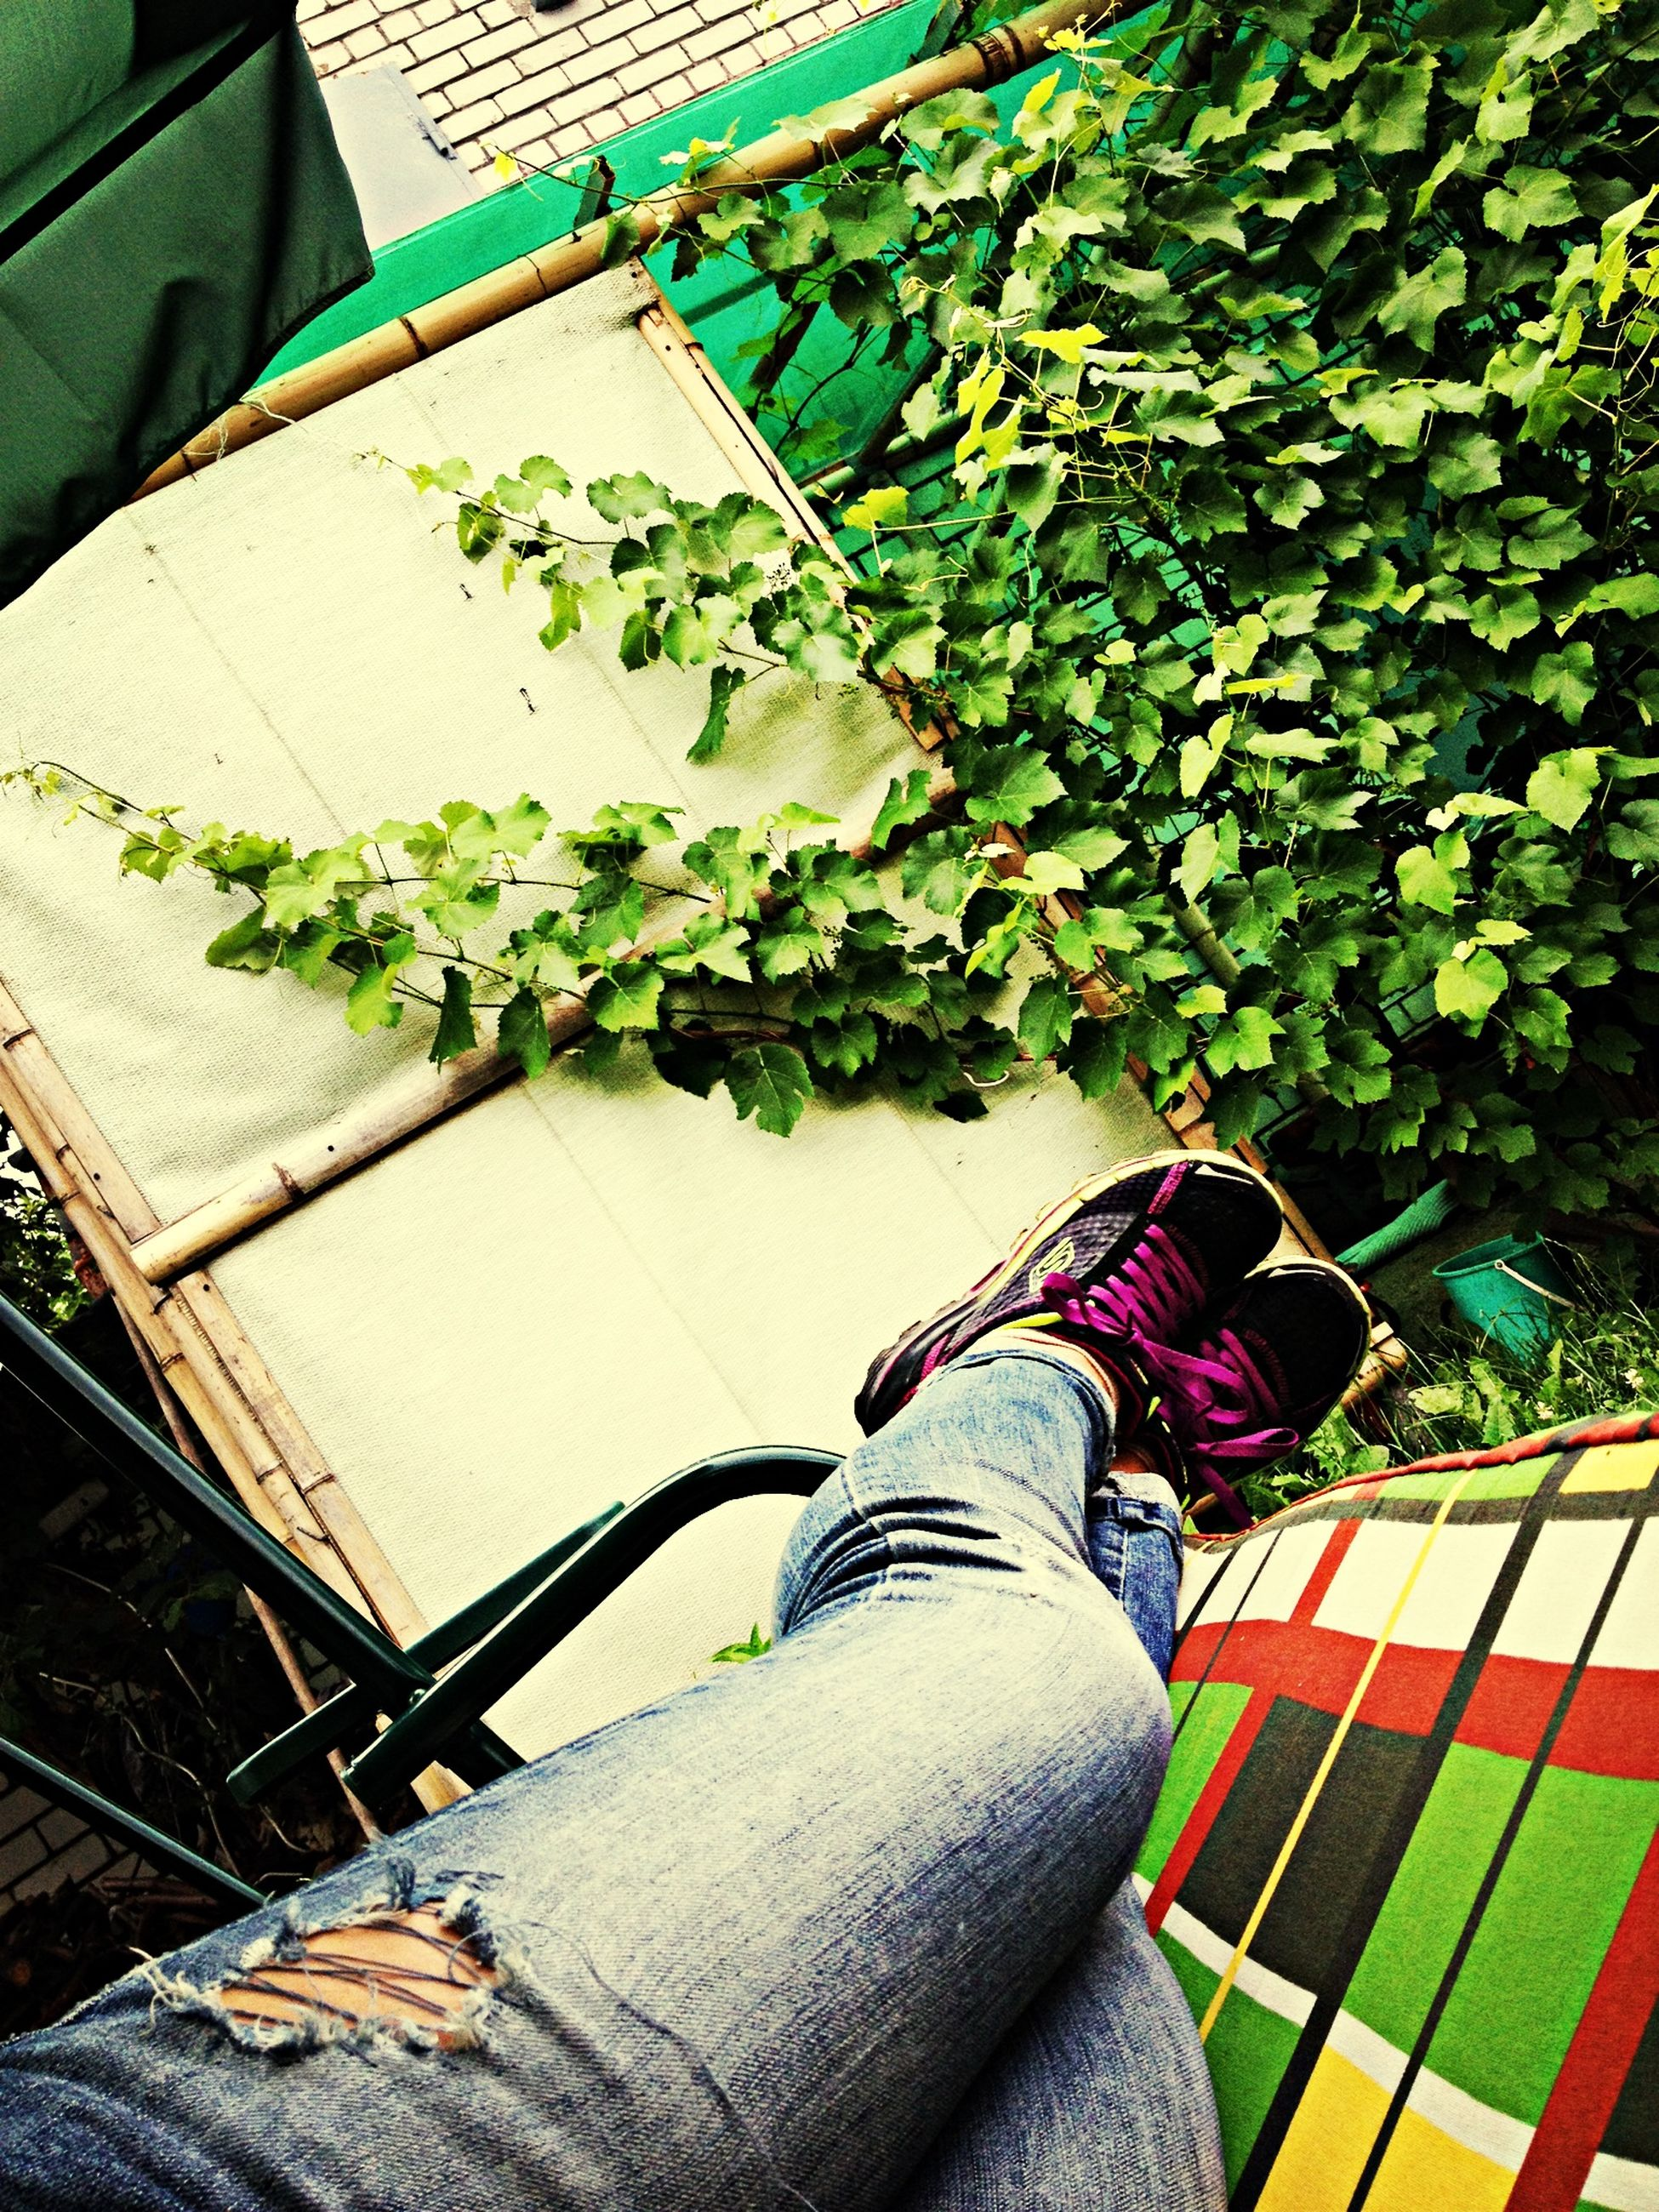 lifestyles, high angle view, person, low section, leisure activity, casual clothing, leaf, men, day, personal perspective, standing, outdoors, shoe, sunlight, railing, jeans, built structure